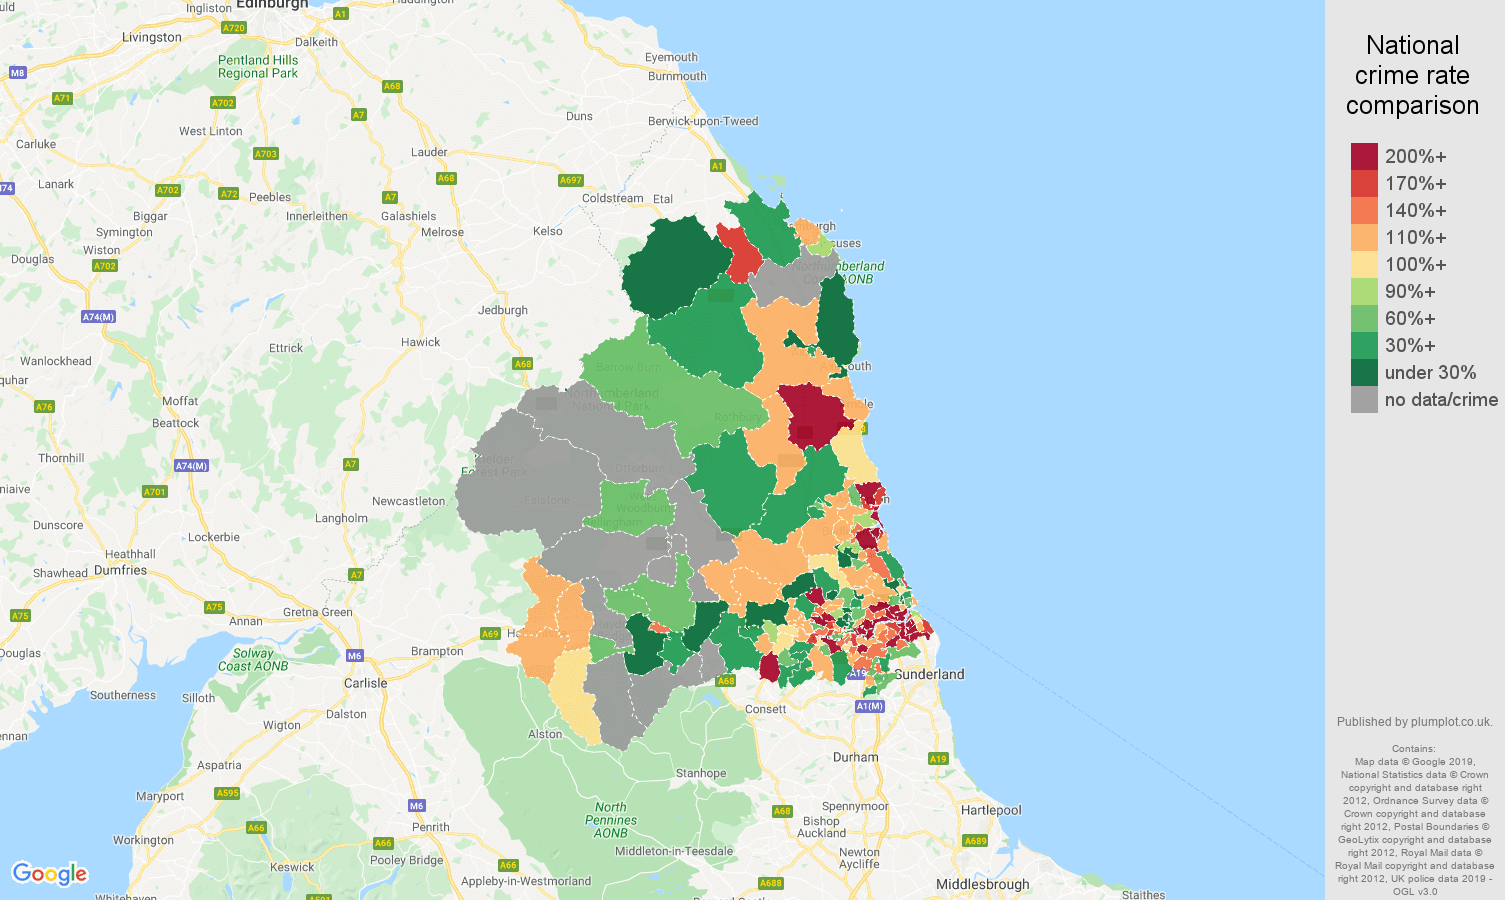 Newcastle upon Tyne other crime rate comparison map